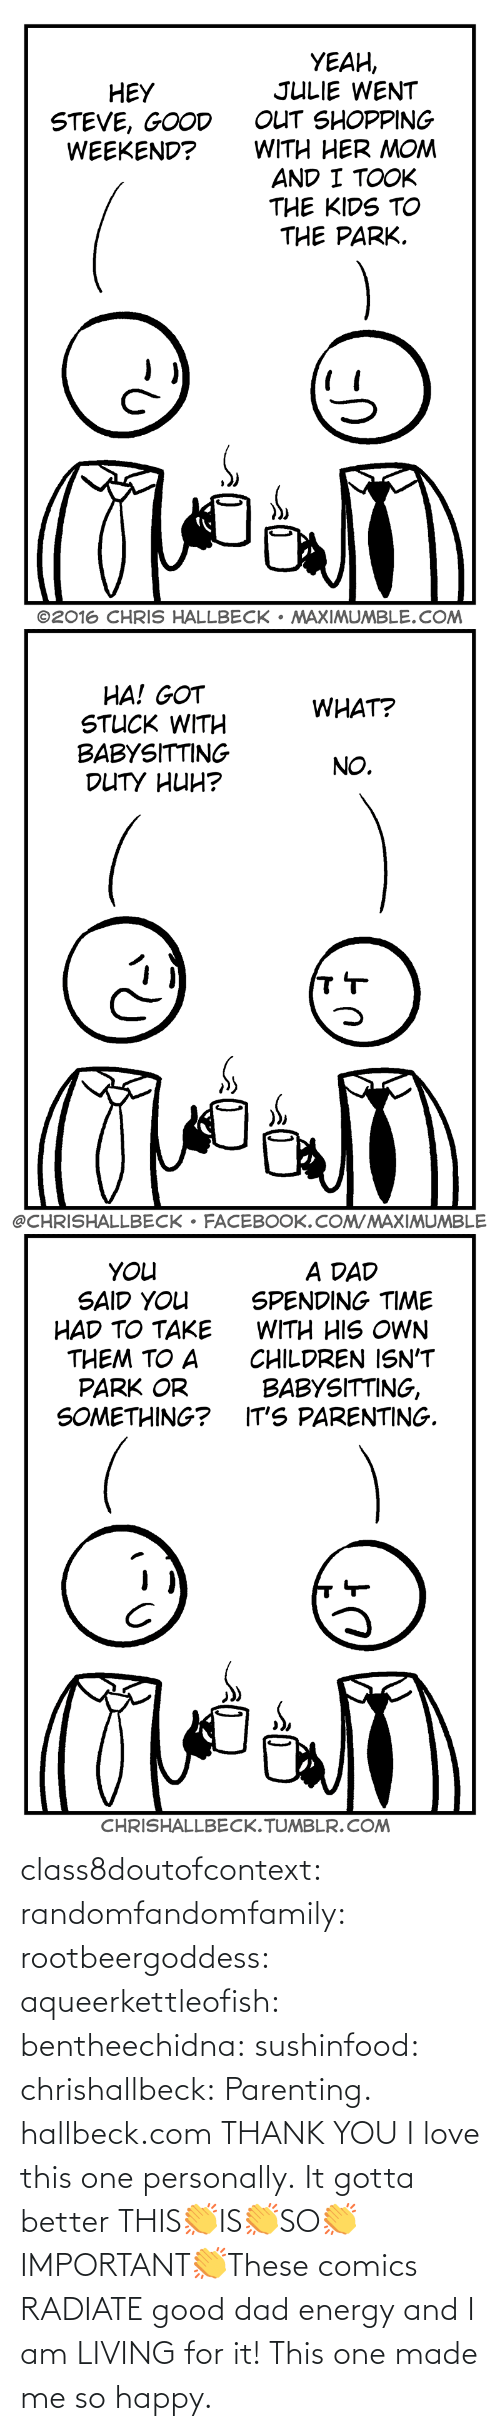 png: class8doutofcontext: randomfandomfamily:  rootbeergoddess:  aqueerkettleofish:  bentheechidna:  sushinfood:  chrishallbeck:  Parenting. hallbeck.com  THANK YOU  I love this one personally.    It gotta better   THIS👏IS👏SO👏IMPORTANT👏These comics RADIATE good dad energy and I am LIVING for it!    This one made me so happy.